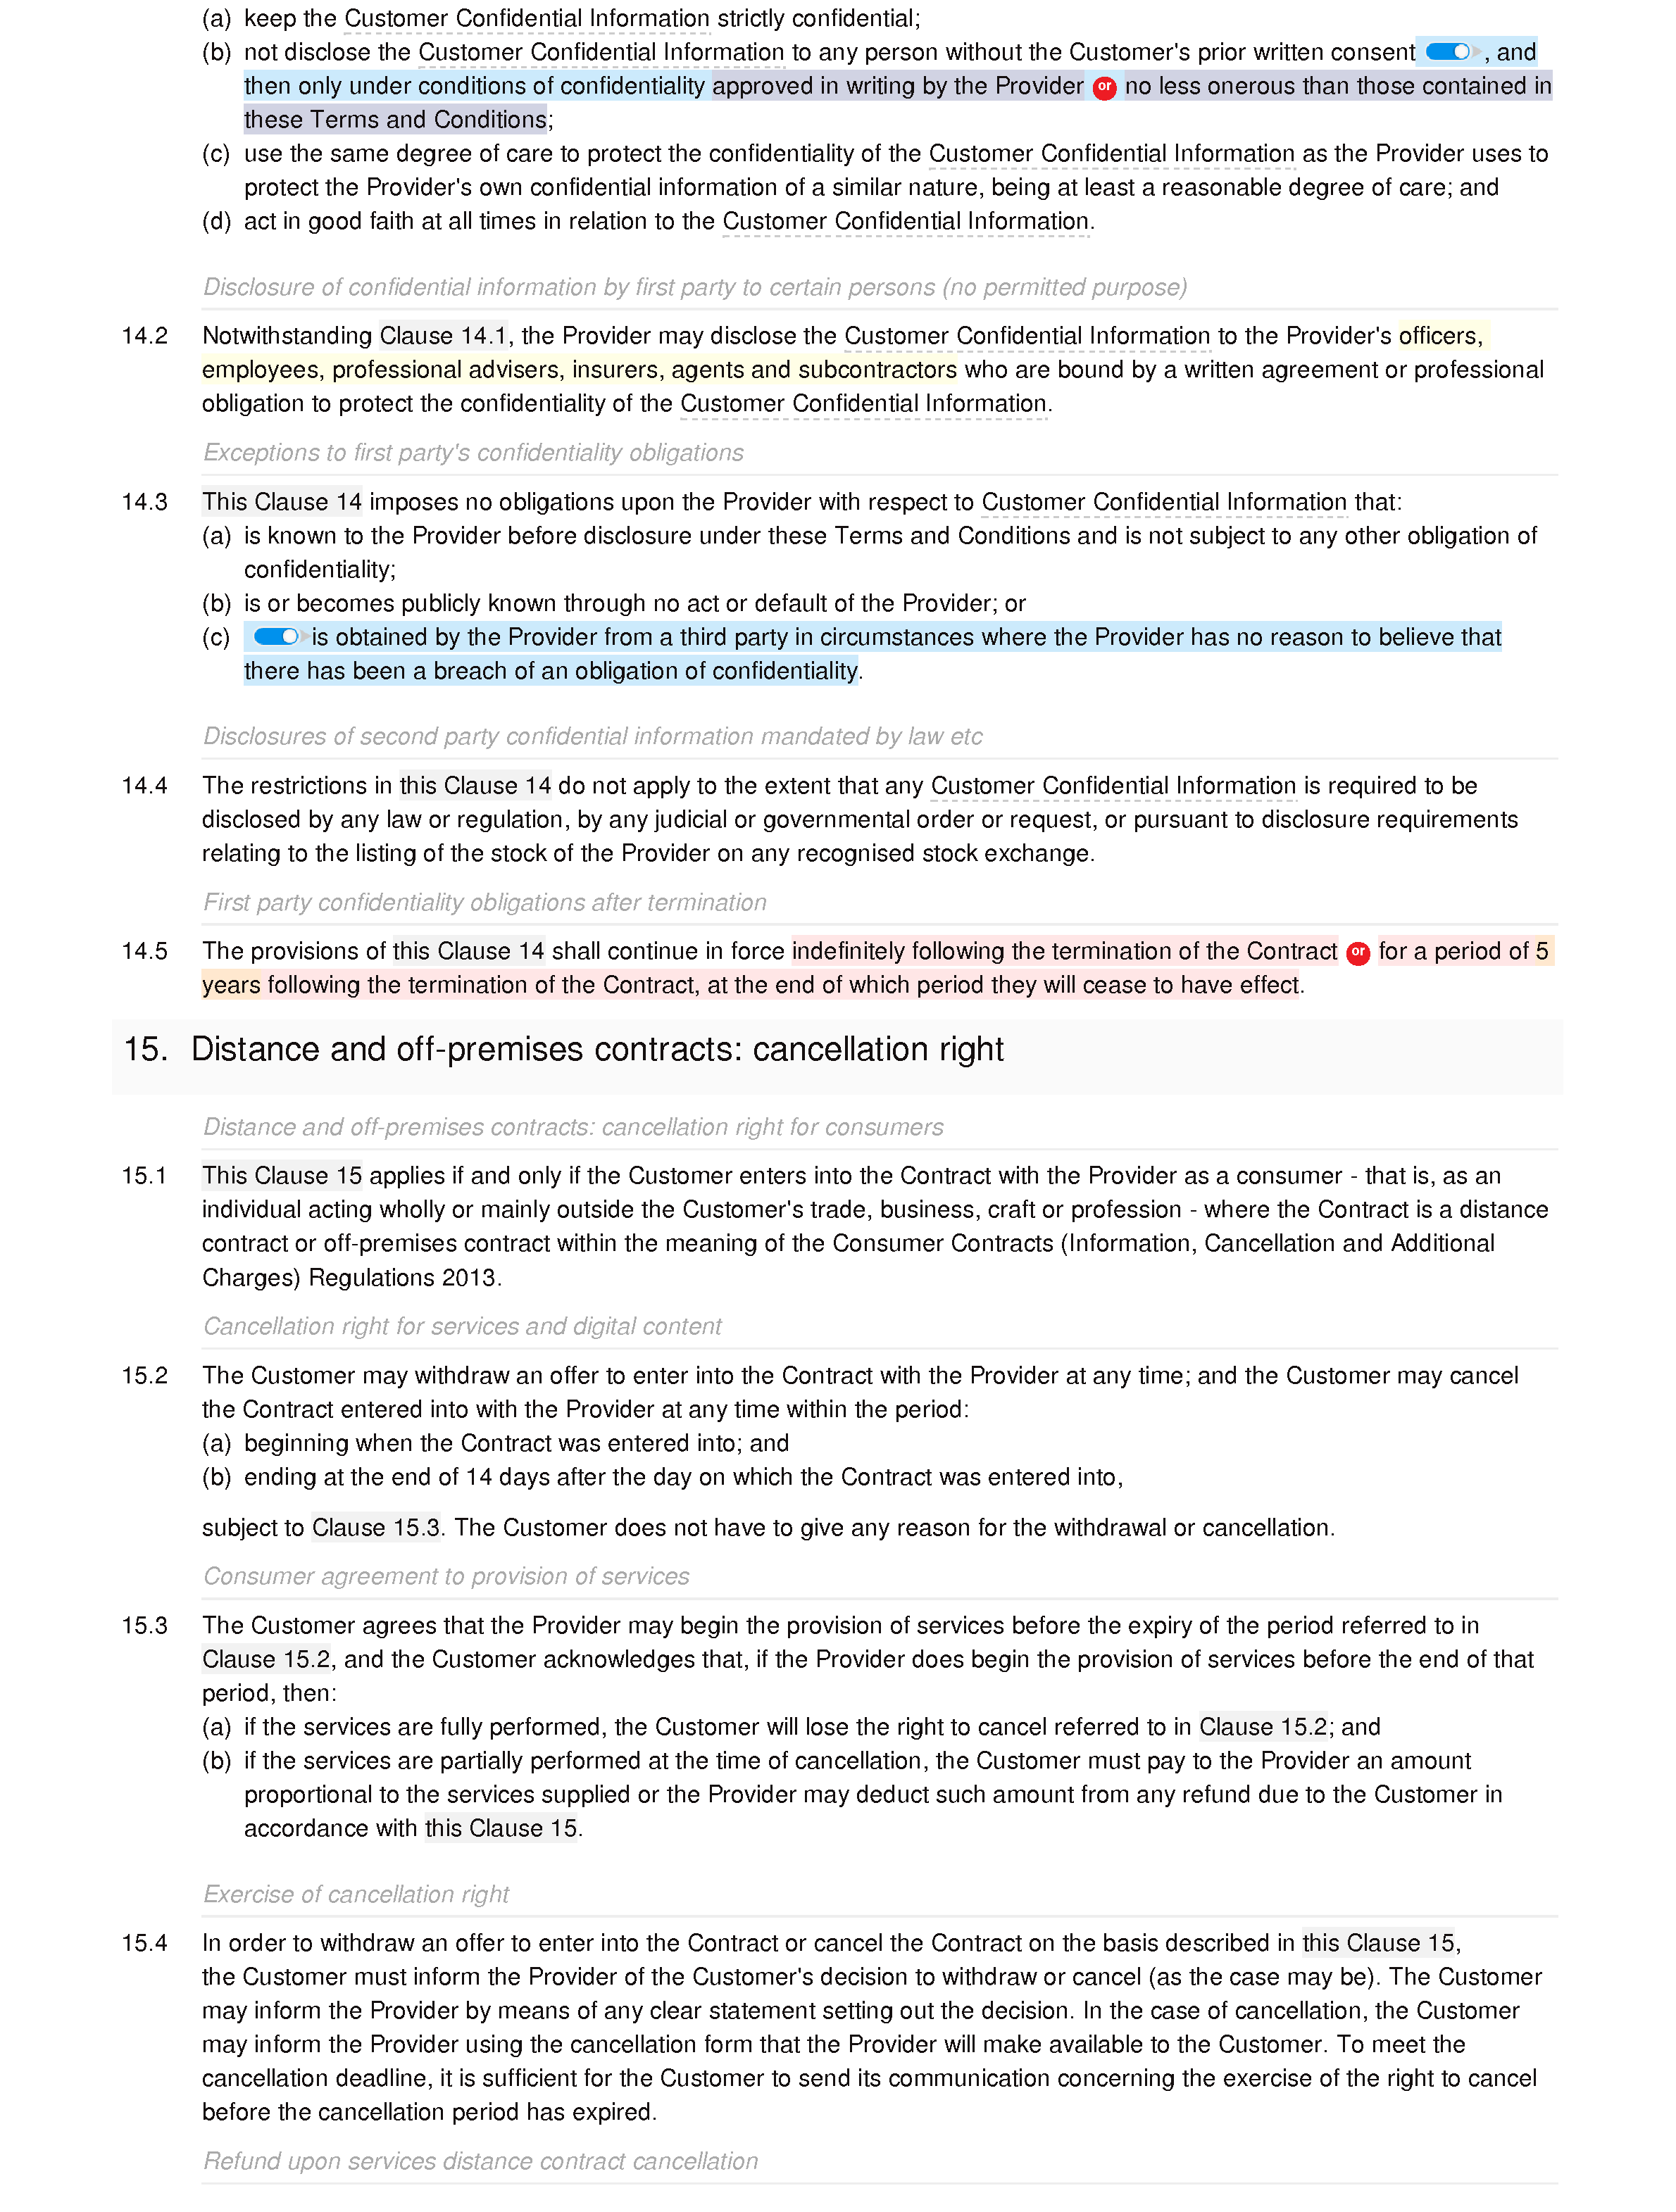 Handyman services terms and conditions document editor preview